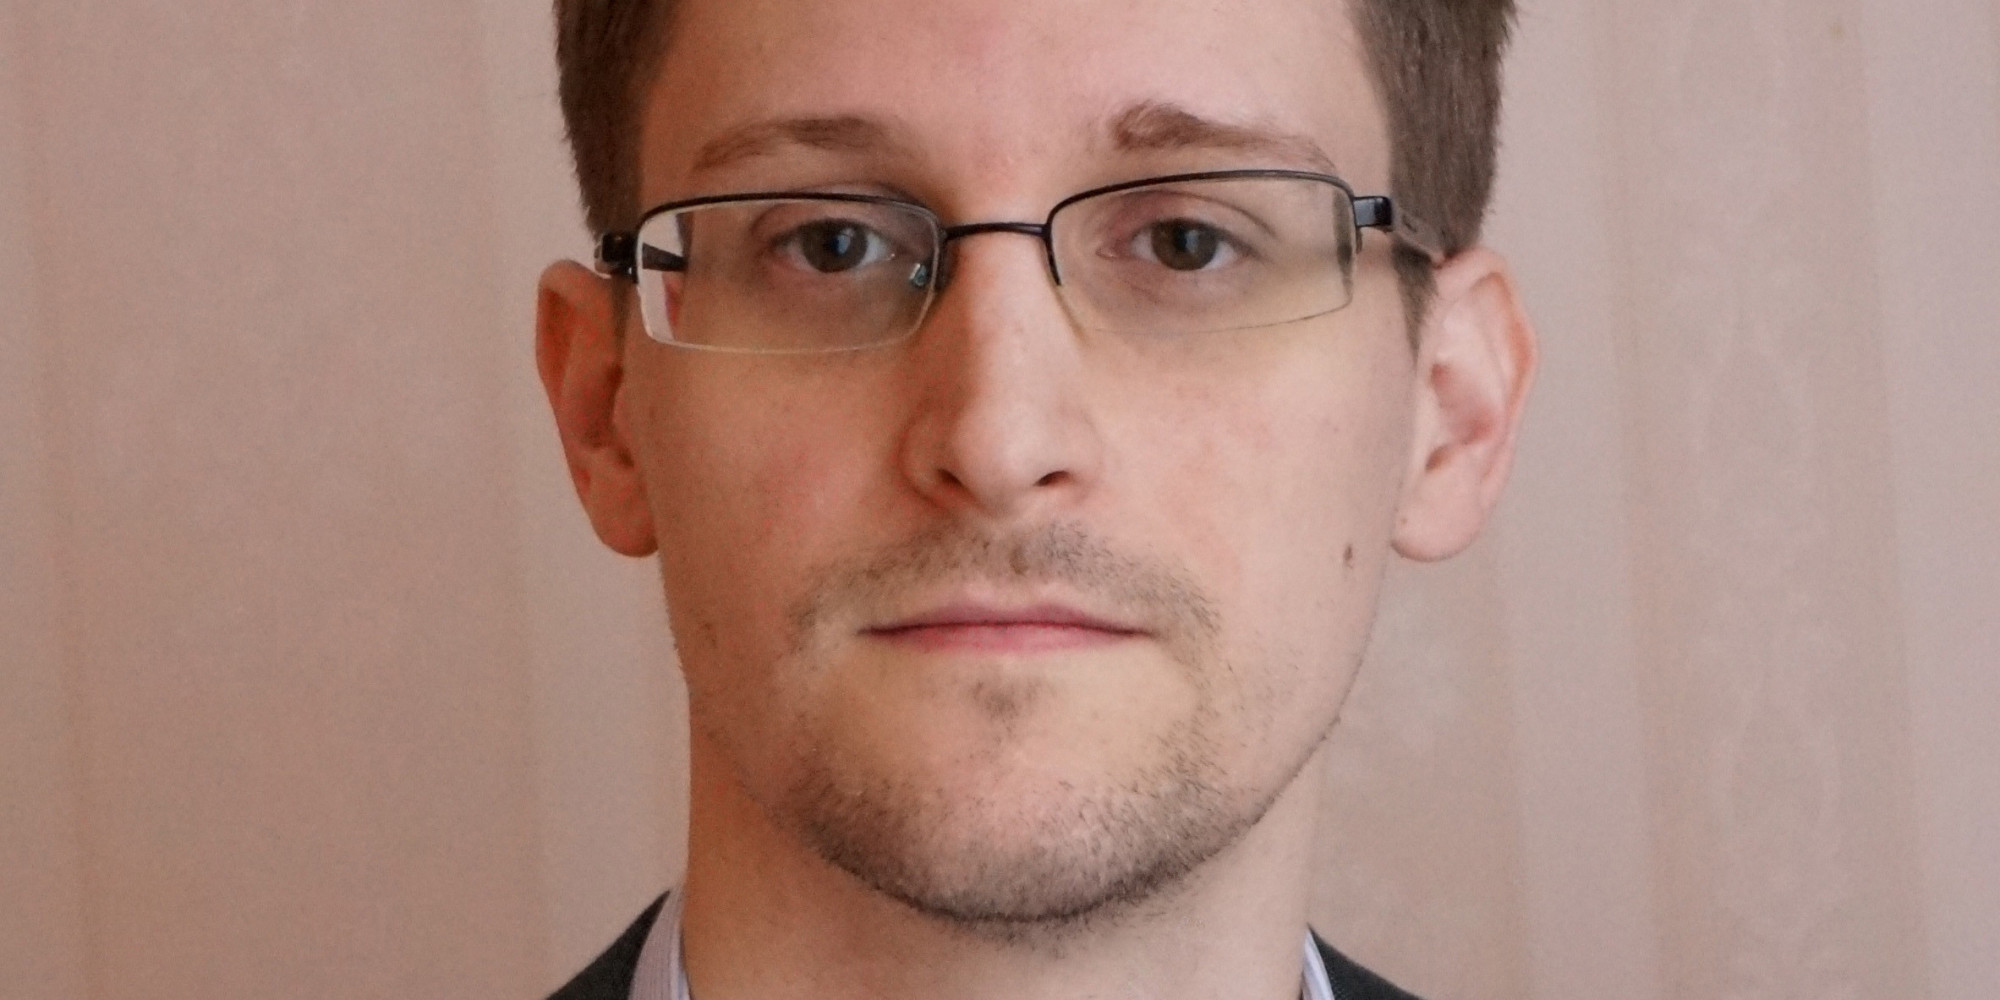 Former intelligence contractor Edward Snowden poses for a photo during an interview in an undisclosed location in December 2013 in Moscow, Russia